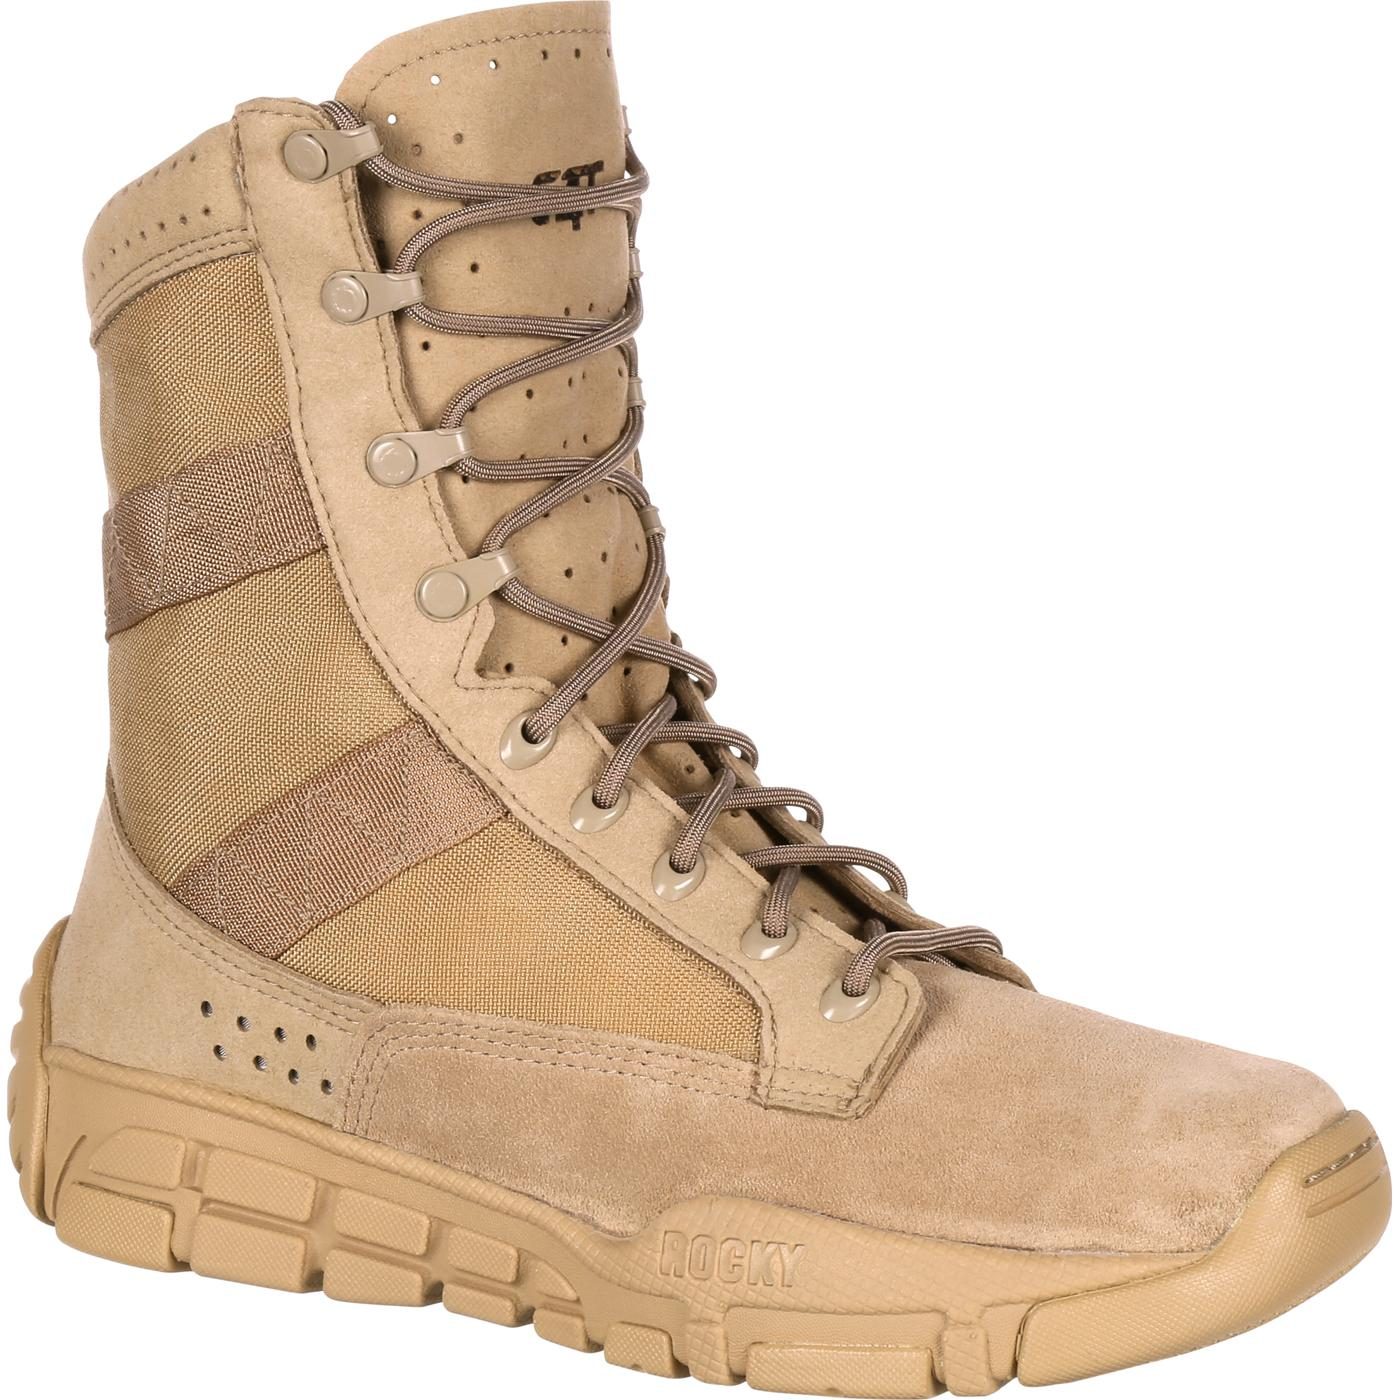 Rocky C4t Trainer Tactical Military Boot Fq0001070